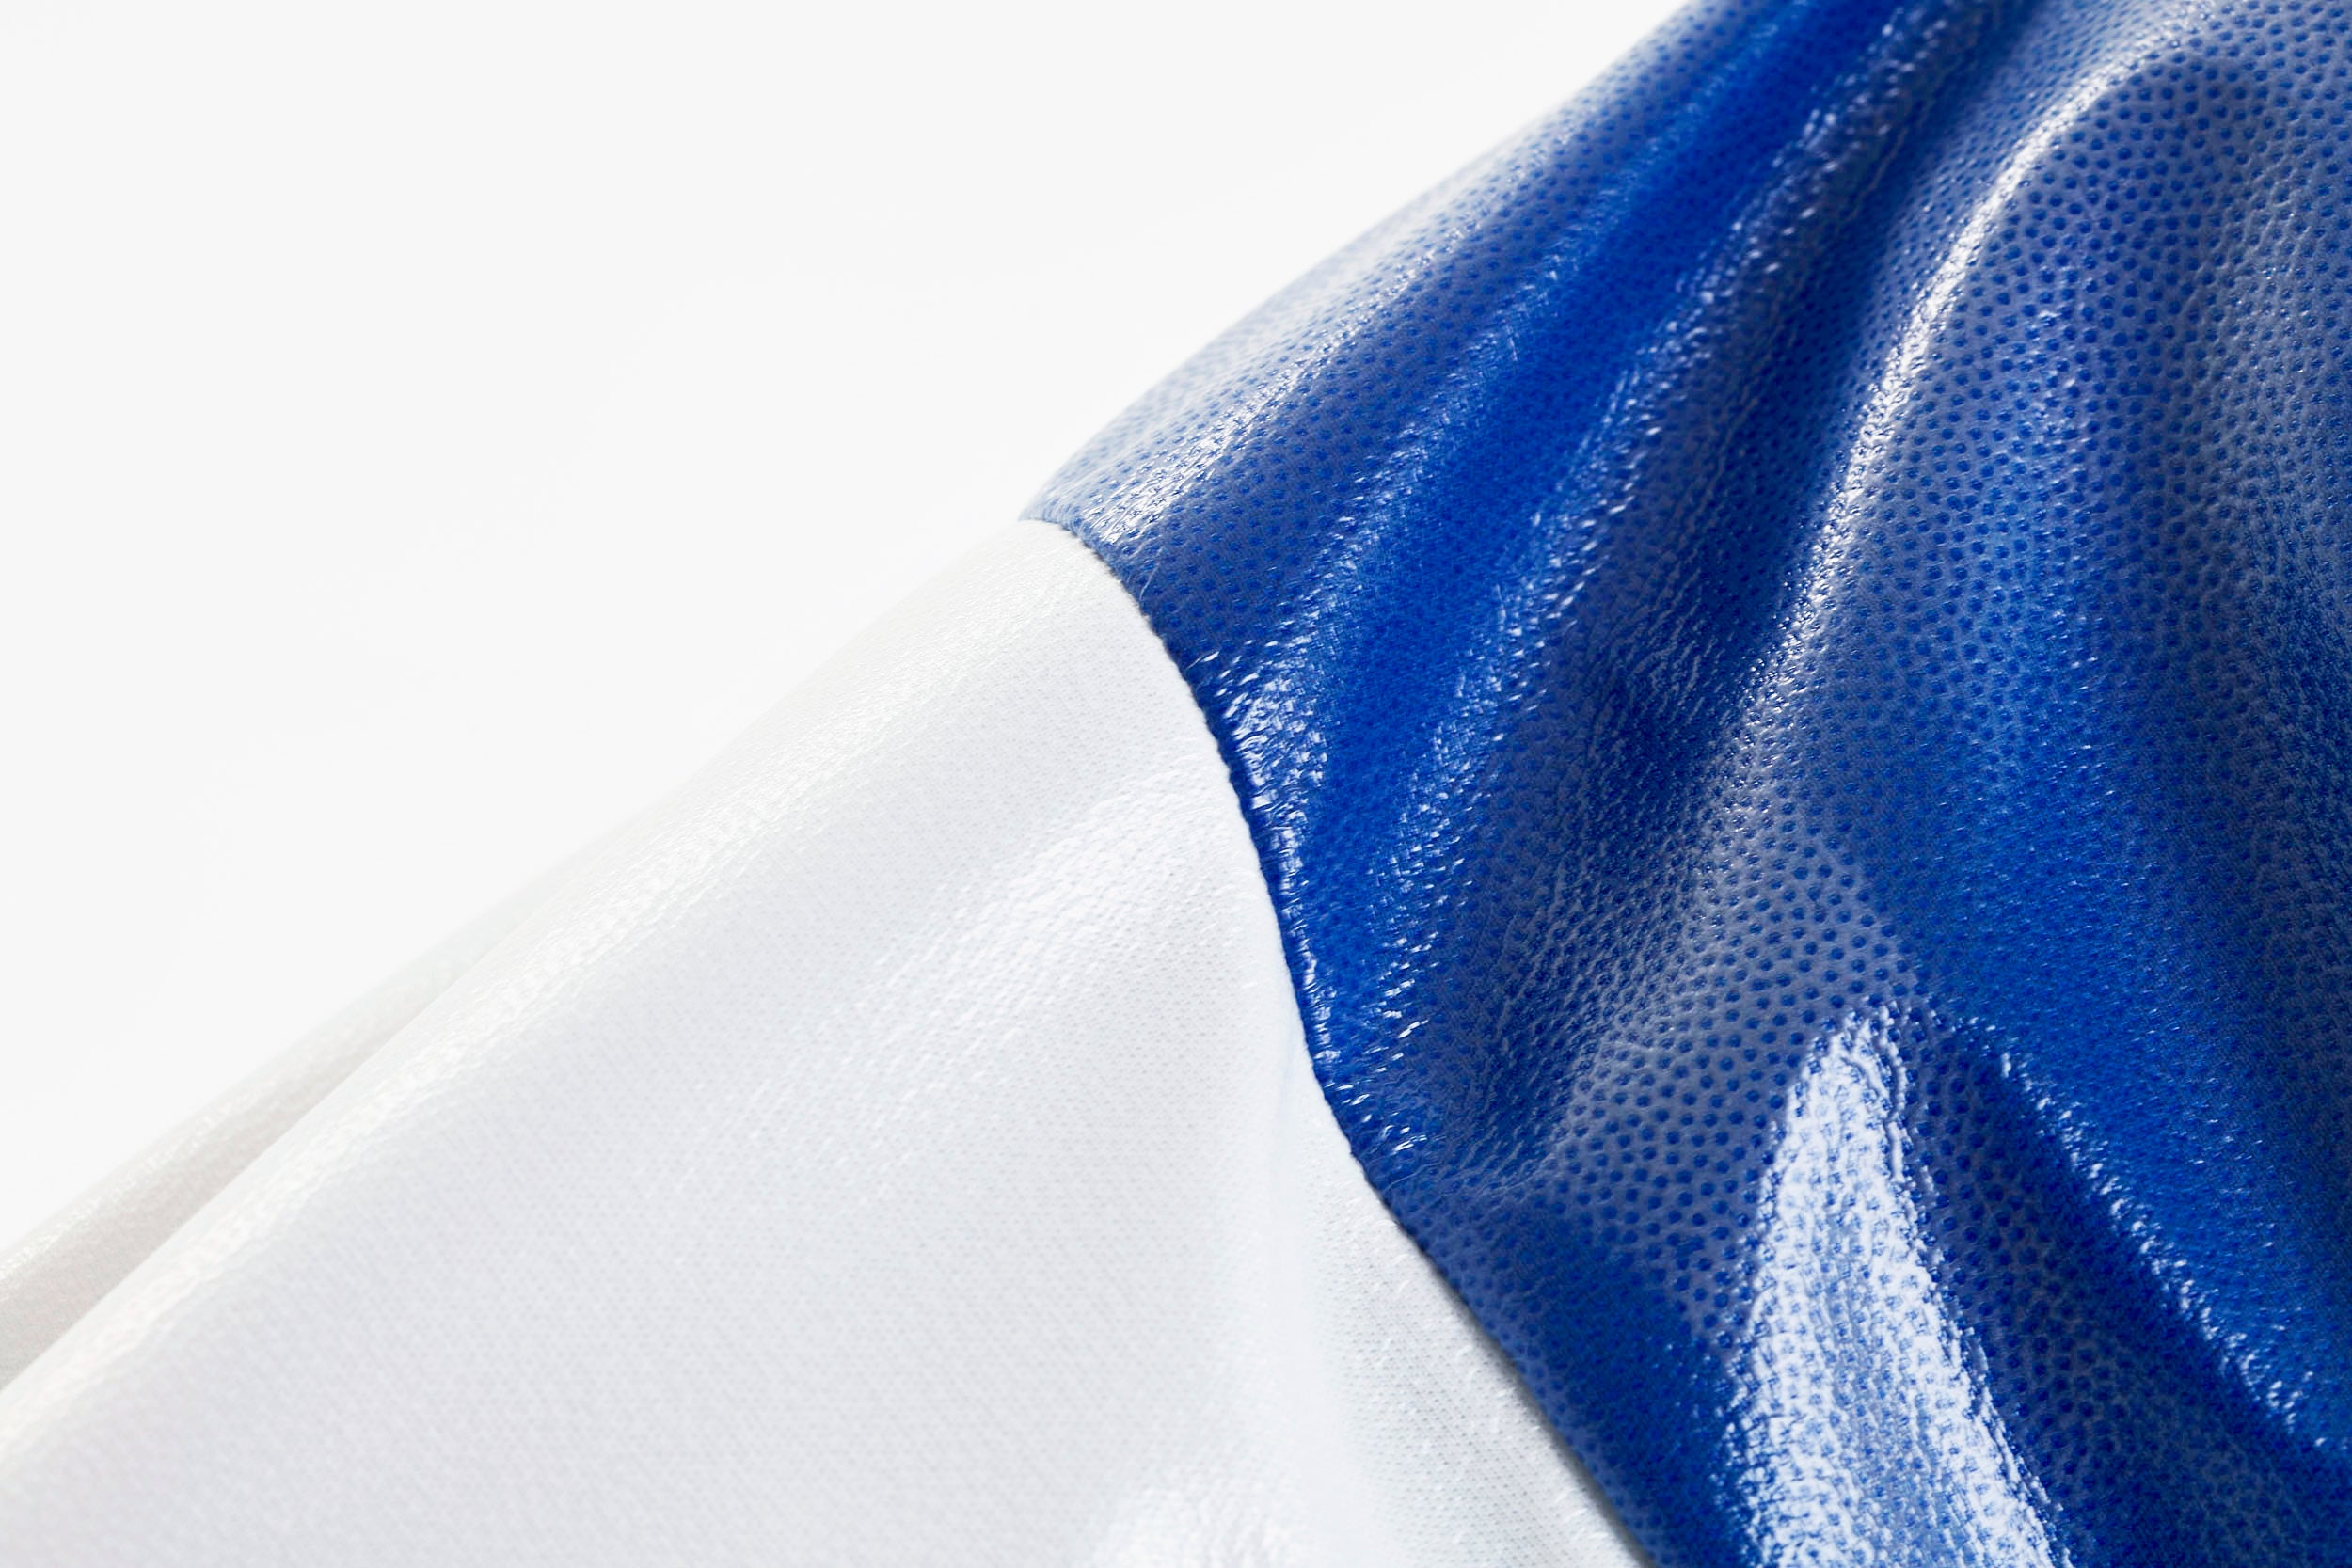 royal-blue-and-white-level-3-fabric